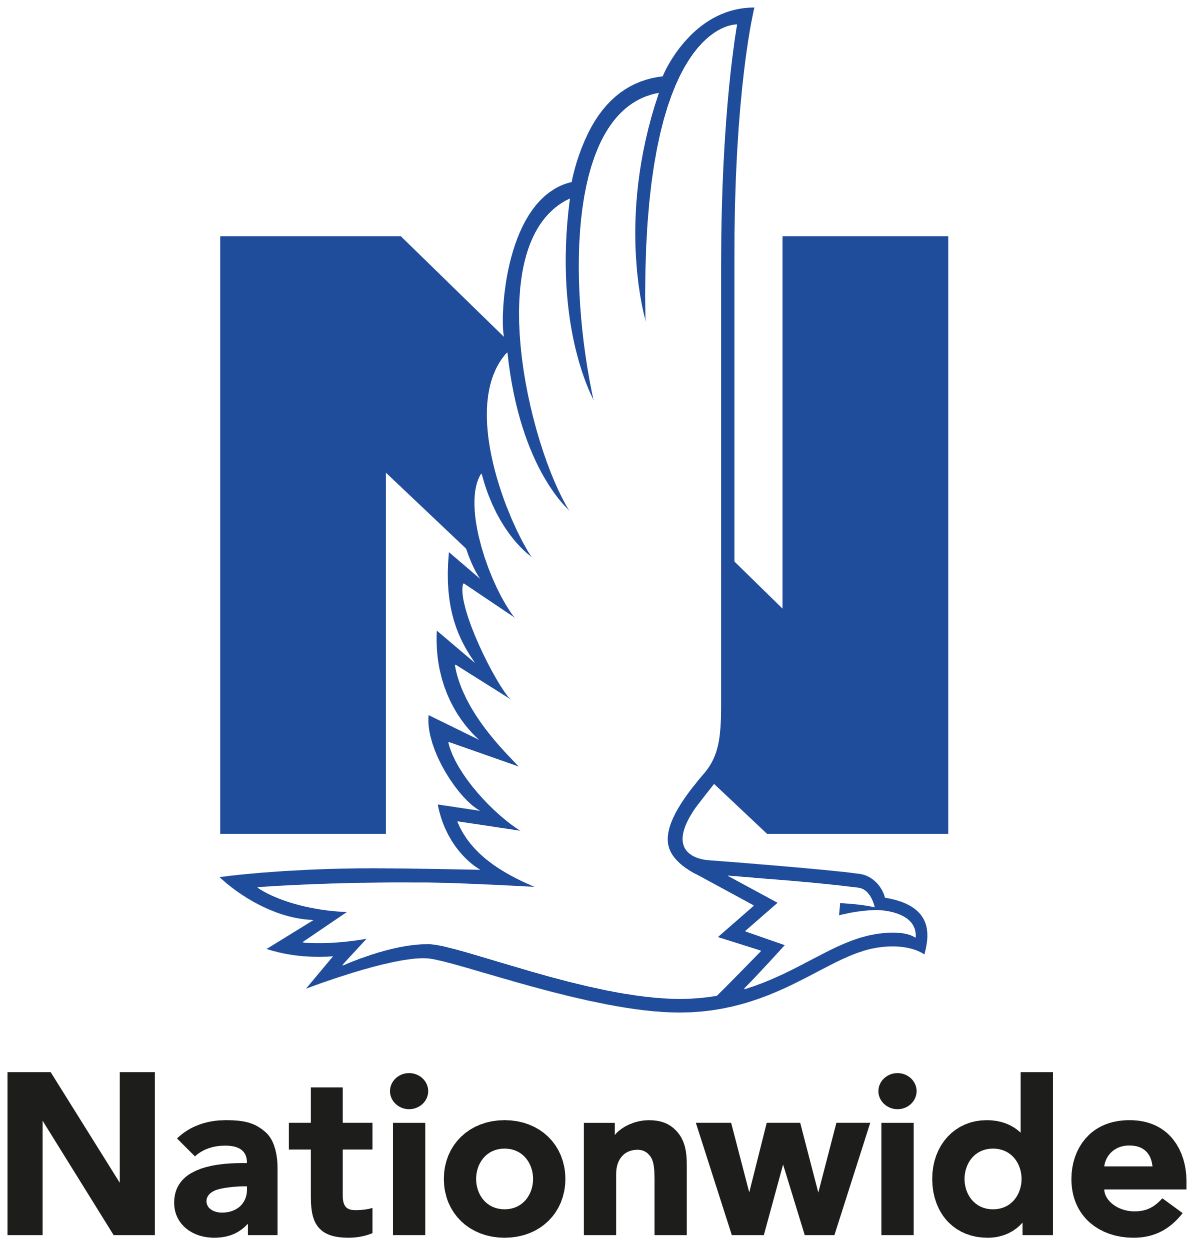 Nationwide_Mutual_Insurance_Company_logo.svg